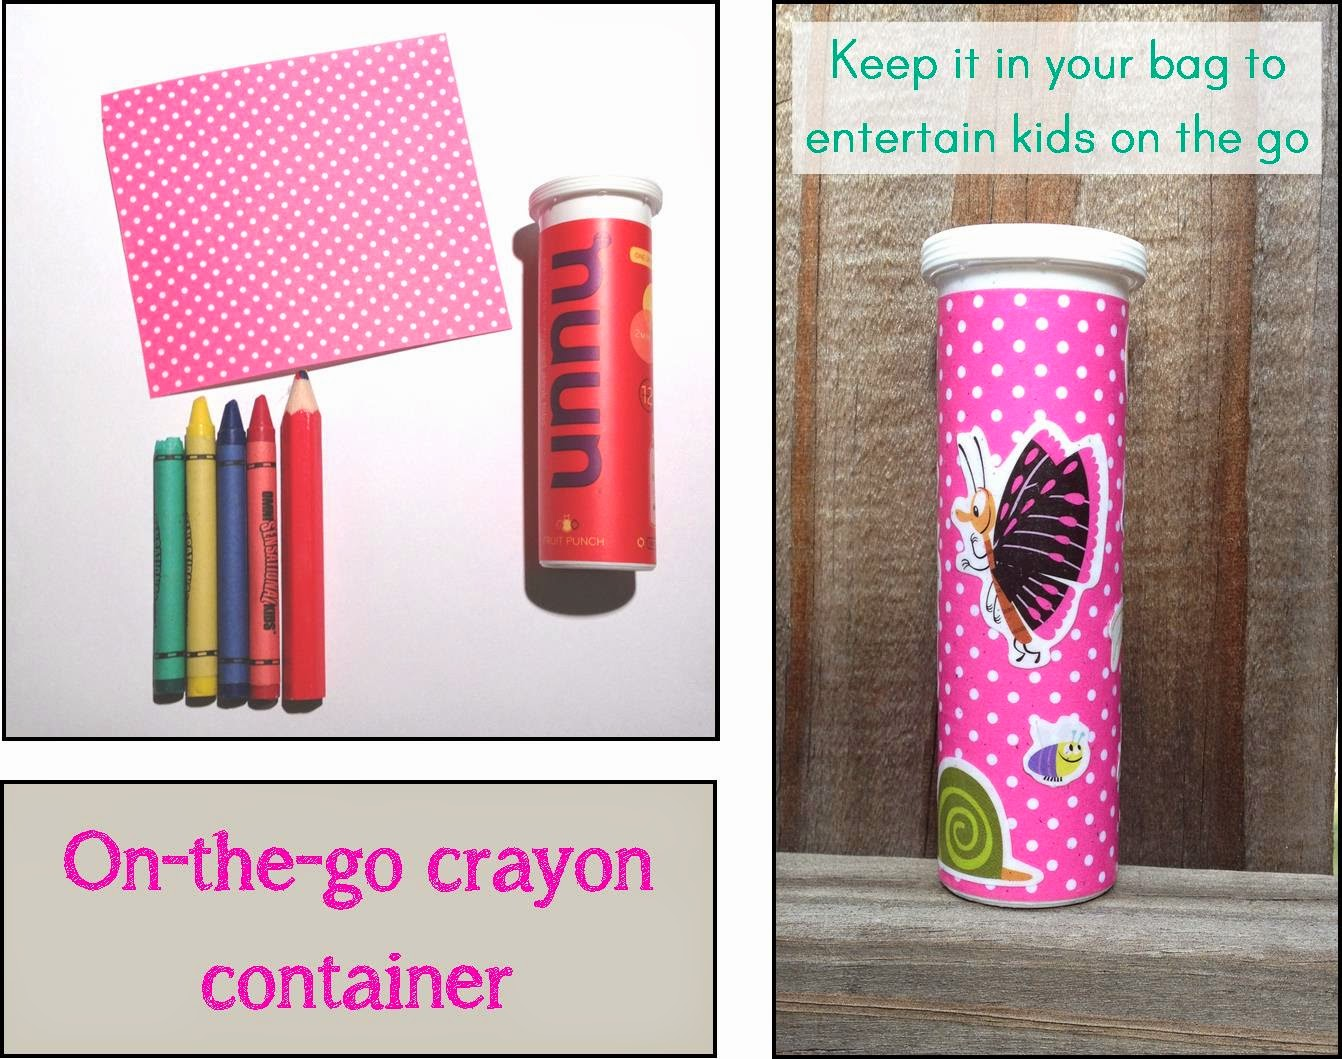 Make a container for crayons so they don't get broken and lost in your purse.